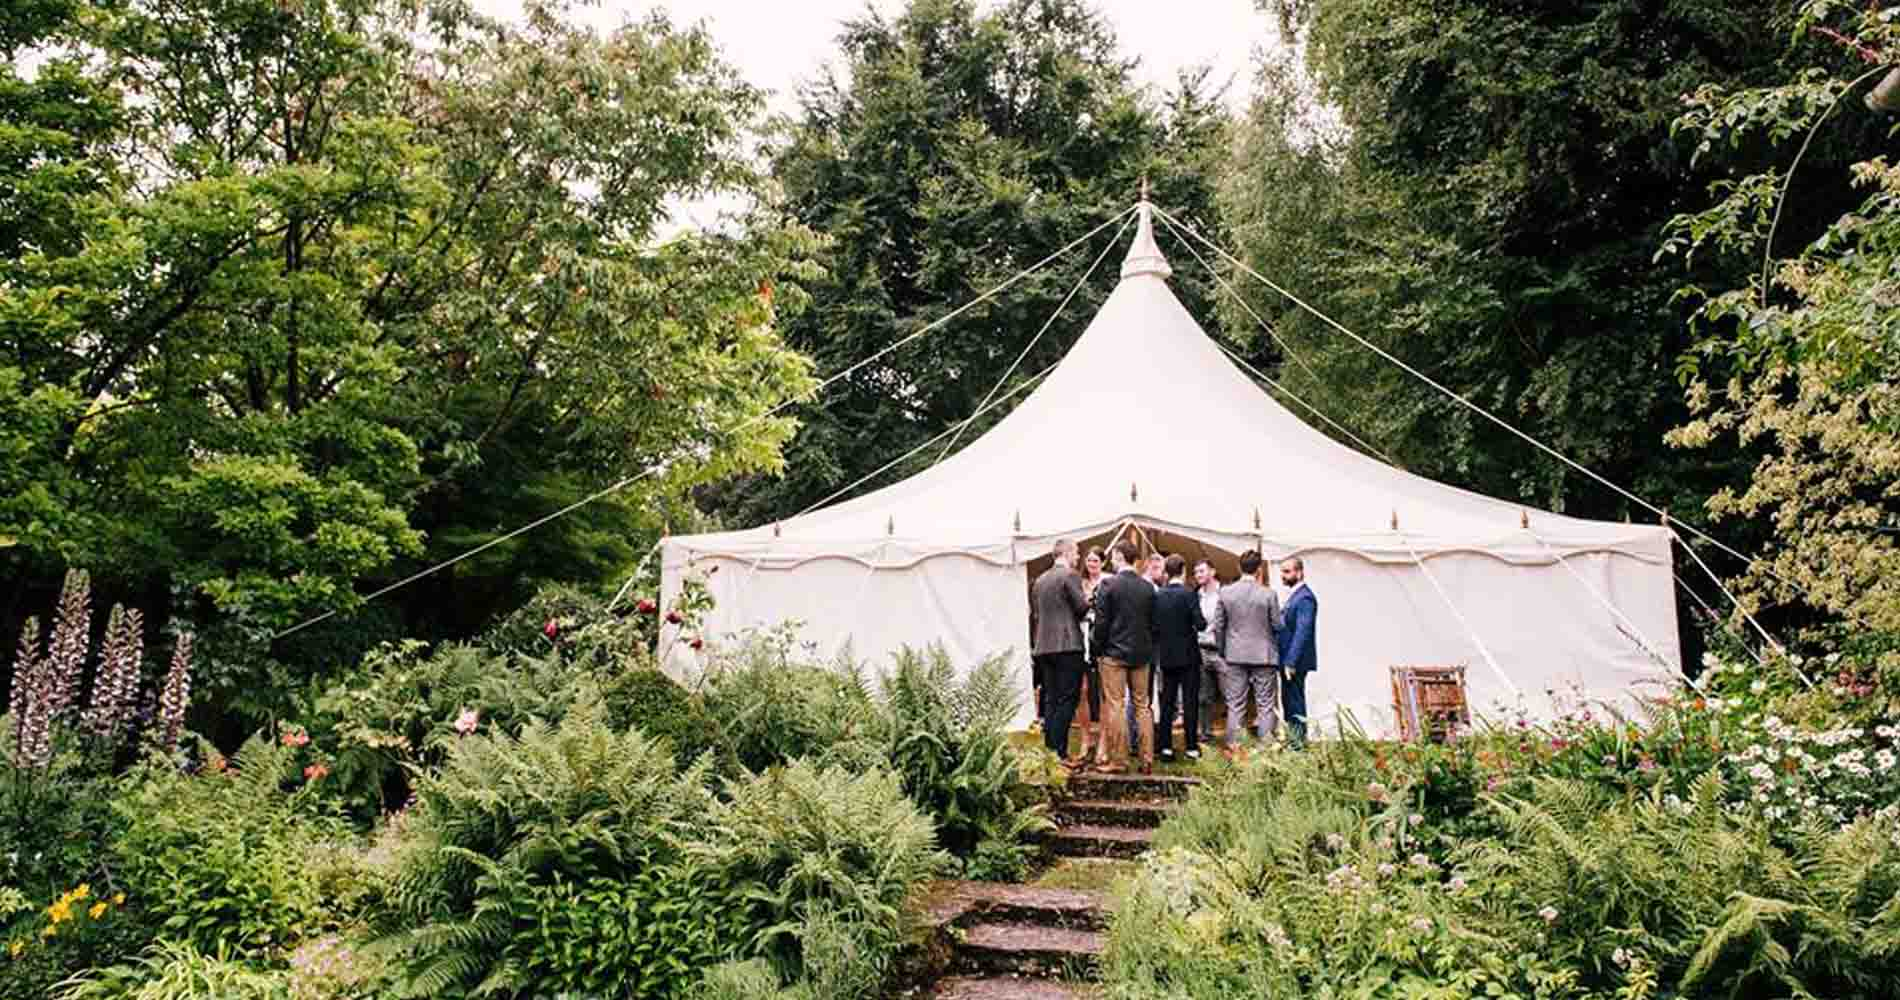 Alternative Events Garden Tipi